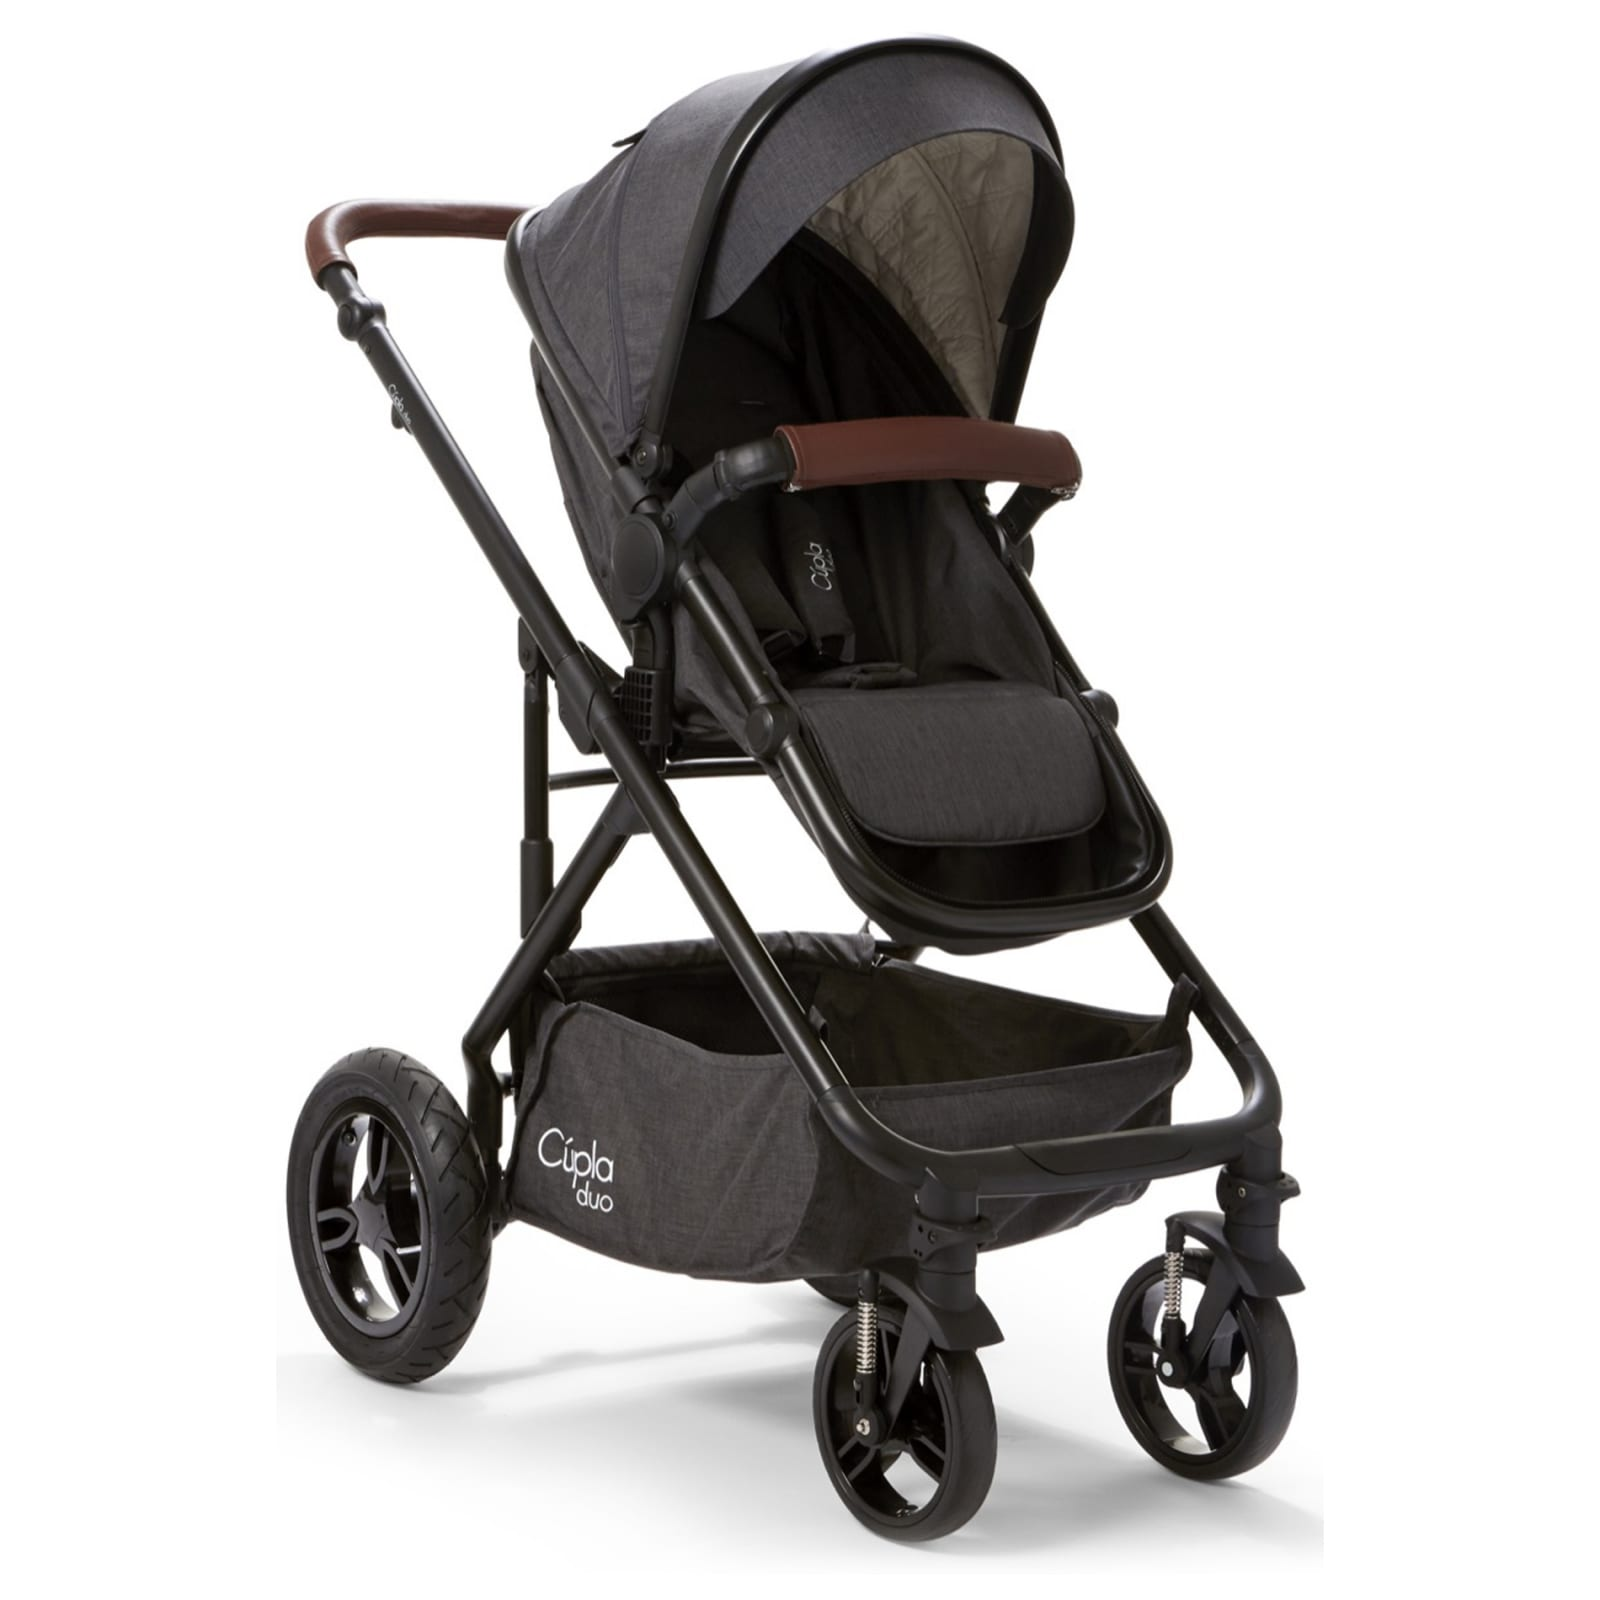 Cupla Duo 2 in 1 Travel System – Charcoal product image